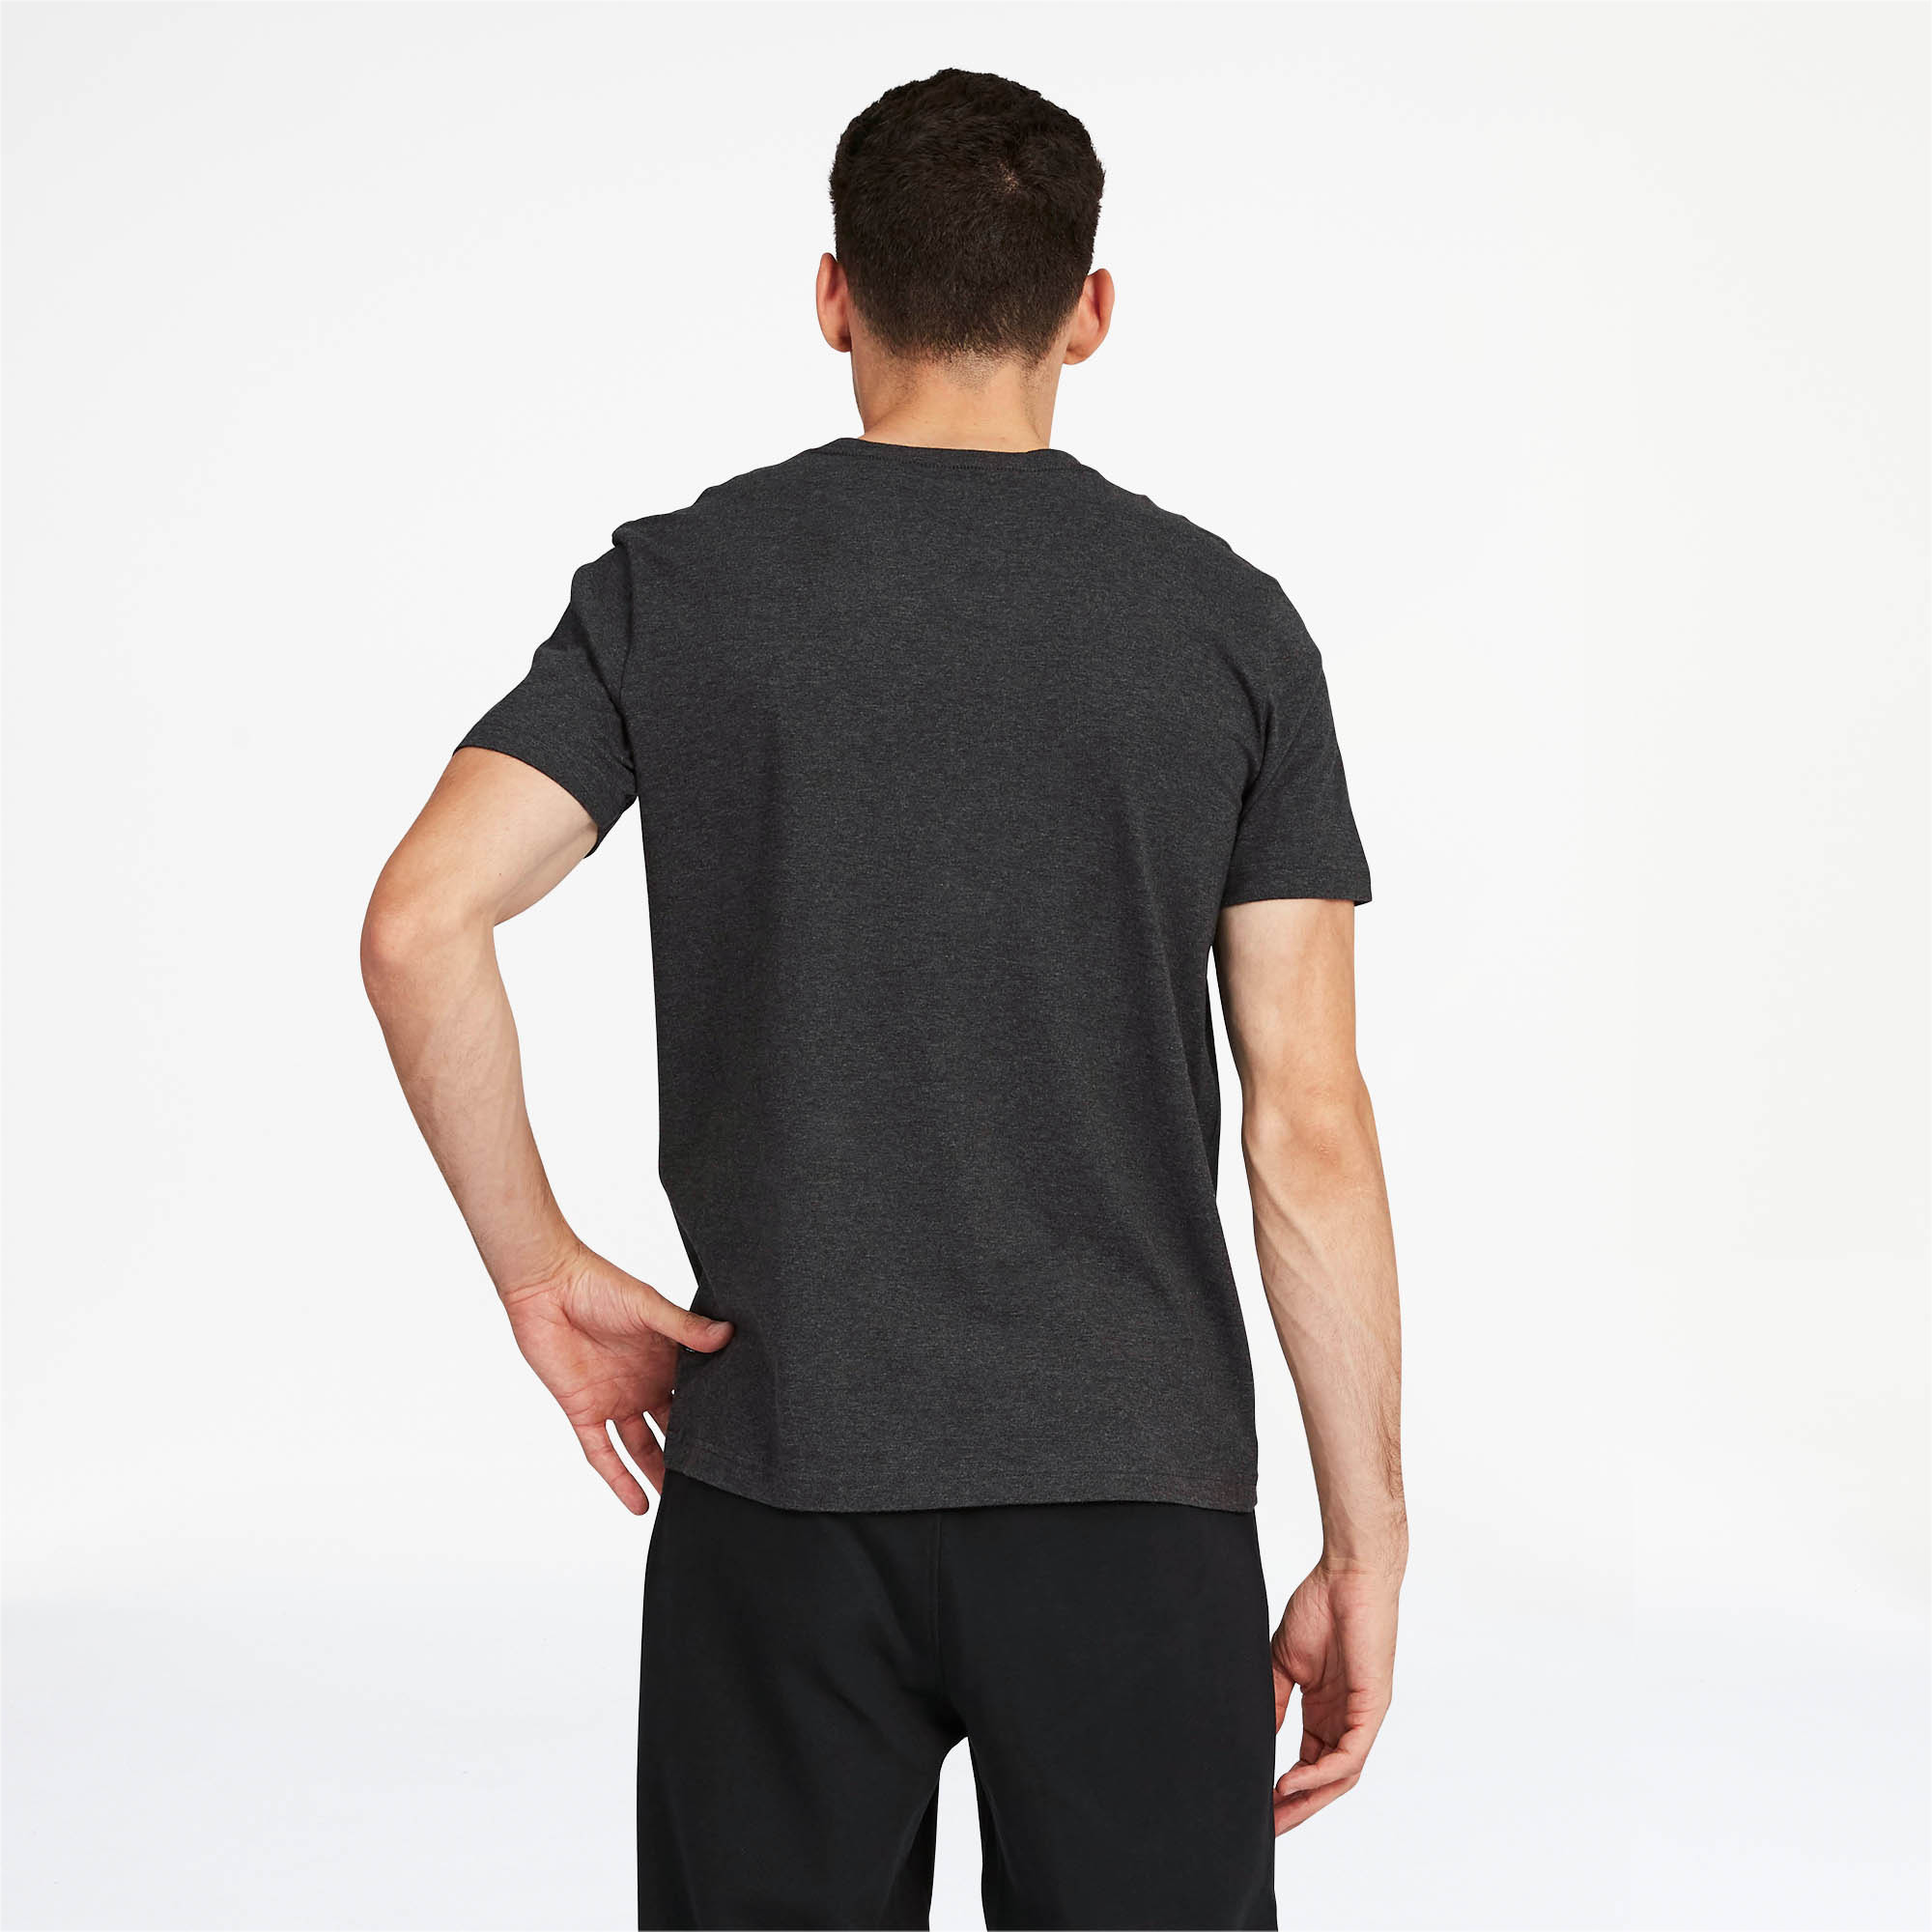 PUMA-Essentials-Men-039-s-V-Neck-Tee-Men-Tee-Basics thumbnail 4